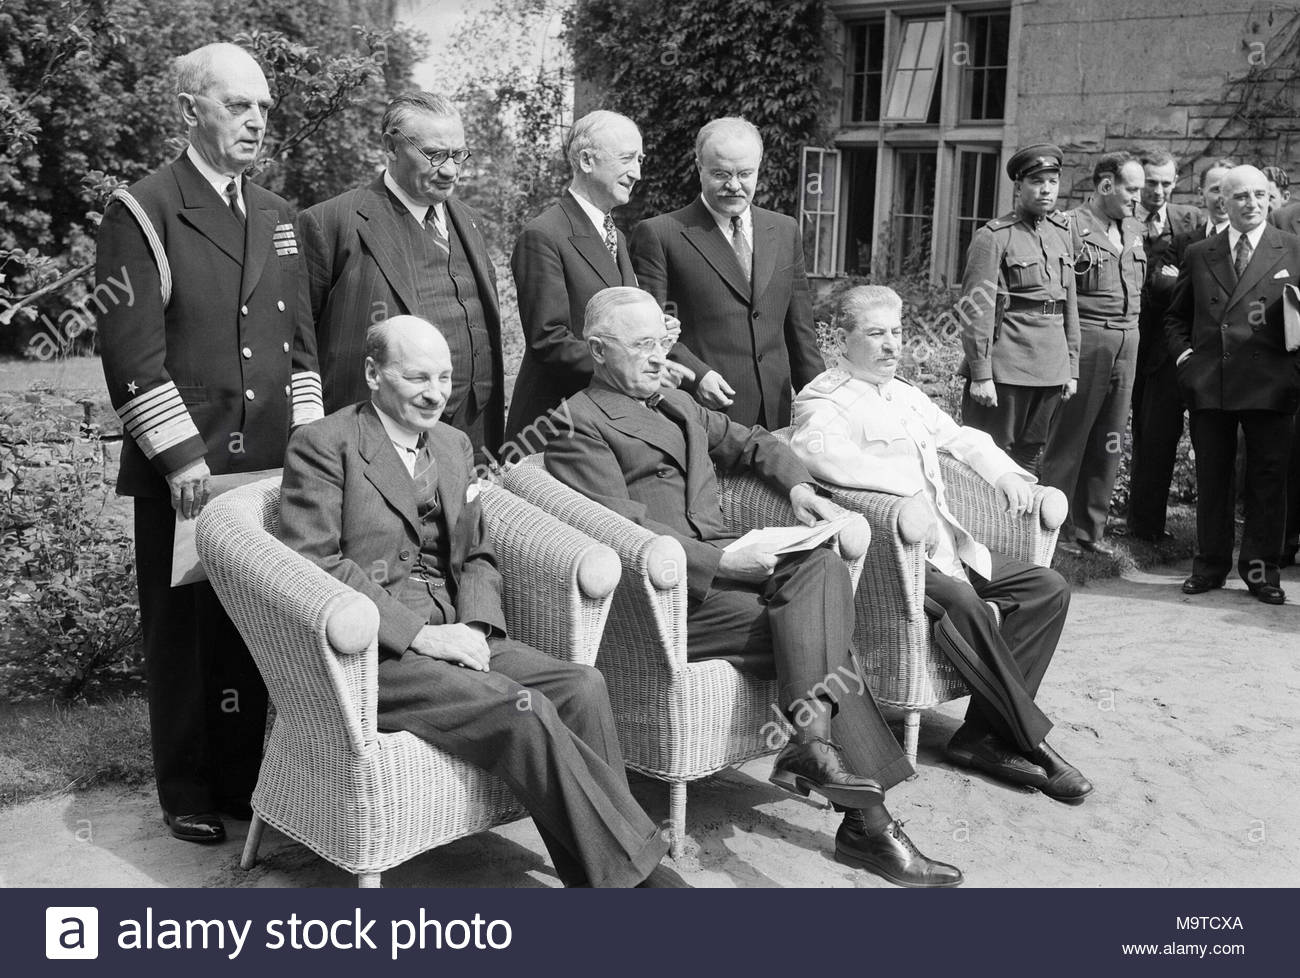 Britain's new Prime Minister, Clement Attlee, with President Truman and Marshal Stalin at the Potsdam Conference in Berlin, 1 August 1945. Clement Attlee with President Truman of the United States and Marshal Stalin of the Soviet Union at the Potsdam Conference in Berlin, shortly after winning the British General election in 1945. Standing from left to right are Admiral Leahy, Ernest Bevin, James Byrnes and Vyacheslav Molotov. The last of the war-time summit conferences was held at Potsdam, outside Berlin from 16 July to 2 August 1945 and the results of the British General Election were announ - Stock Image